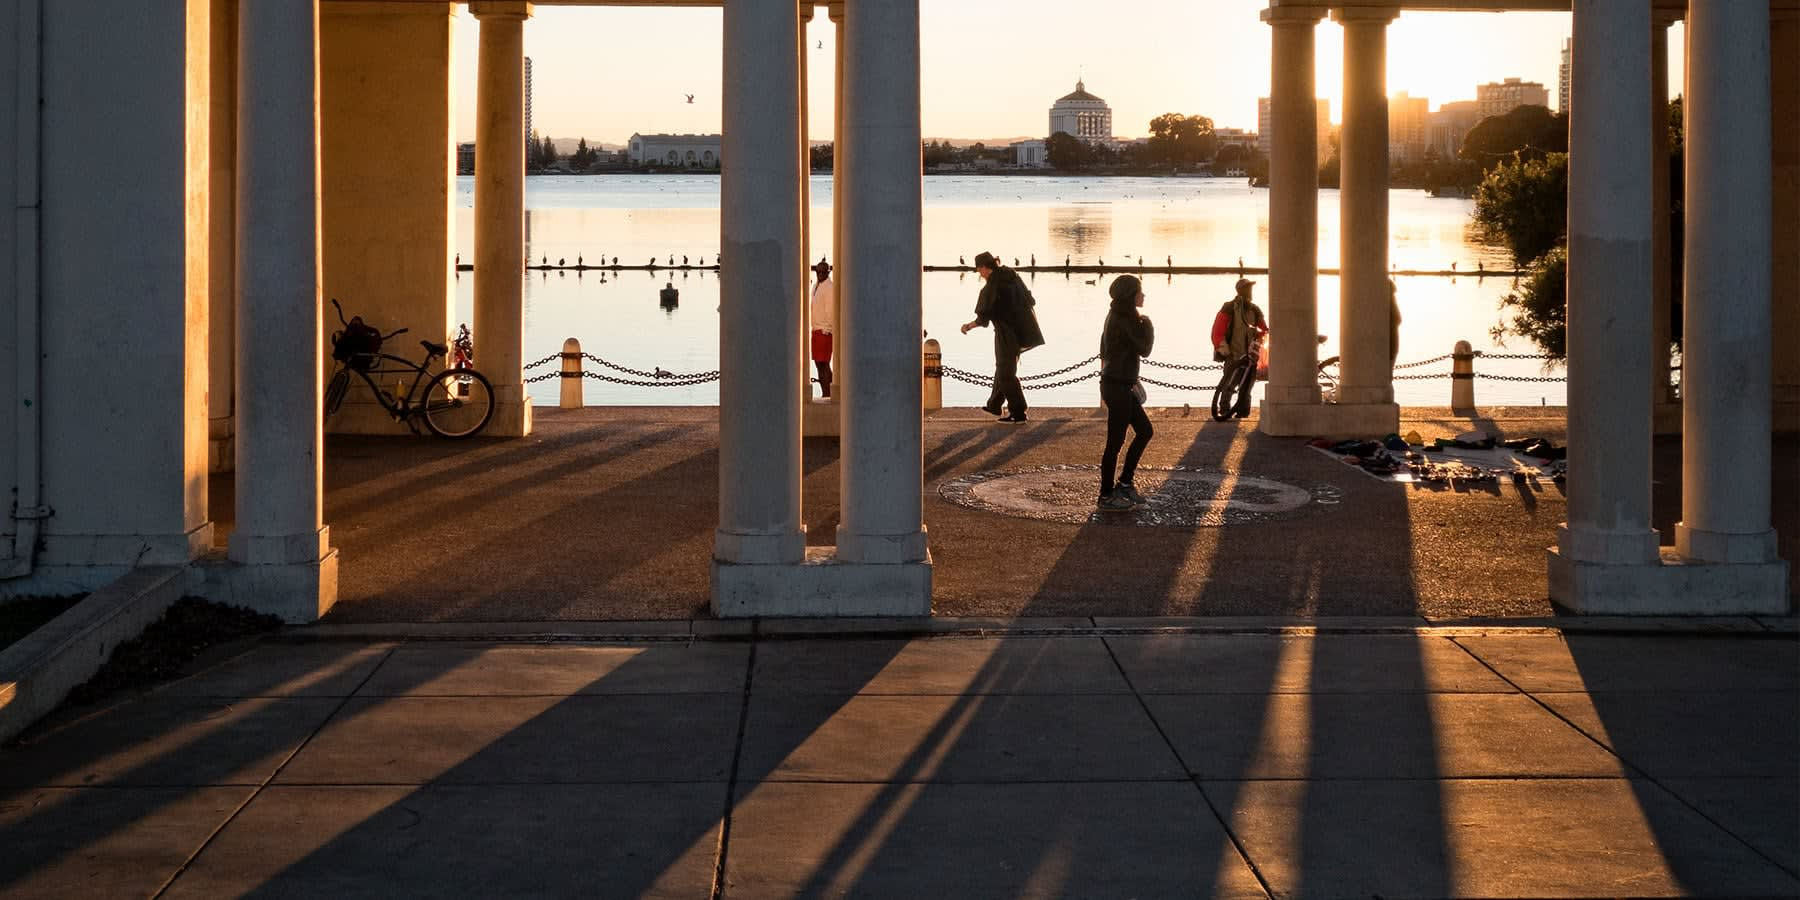 View of people walking under pillars by a lake in the sunset